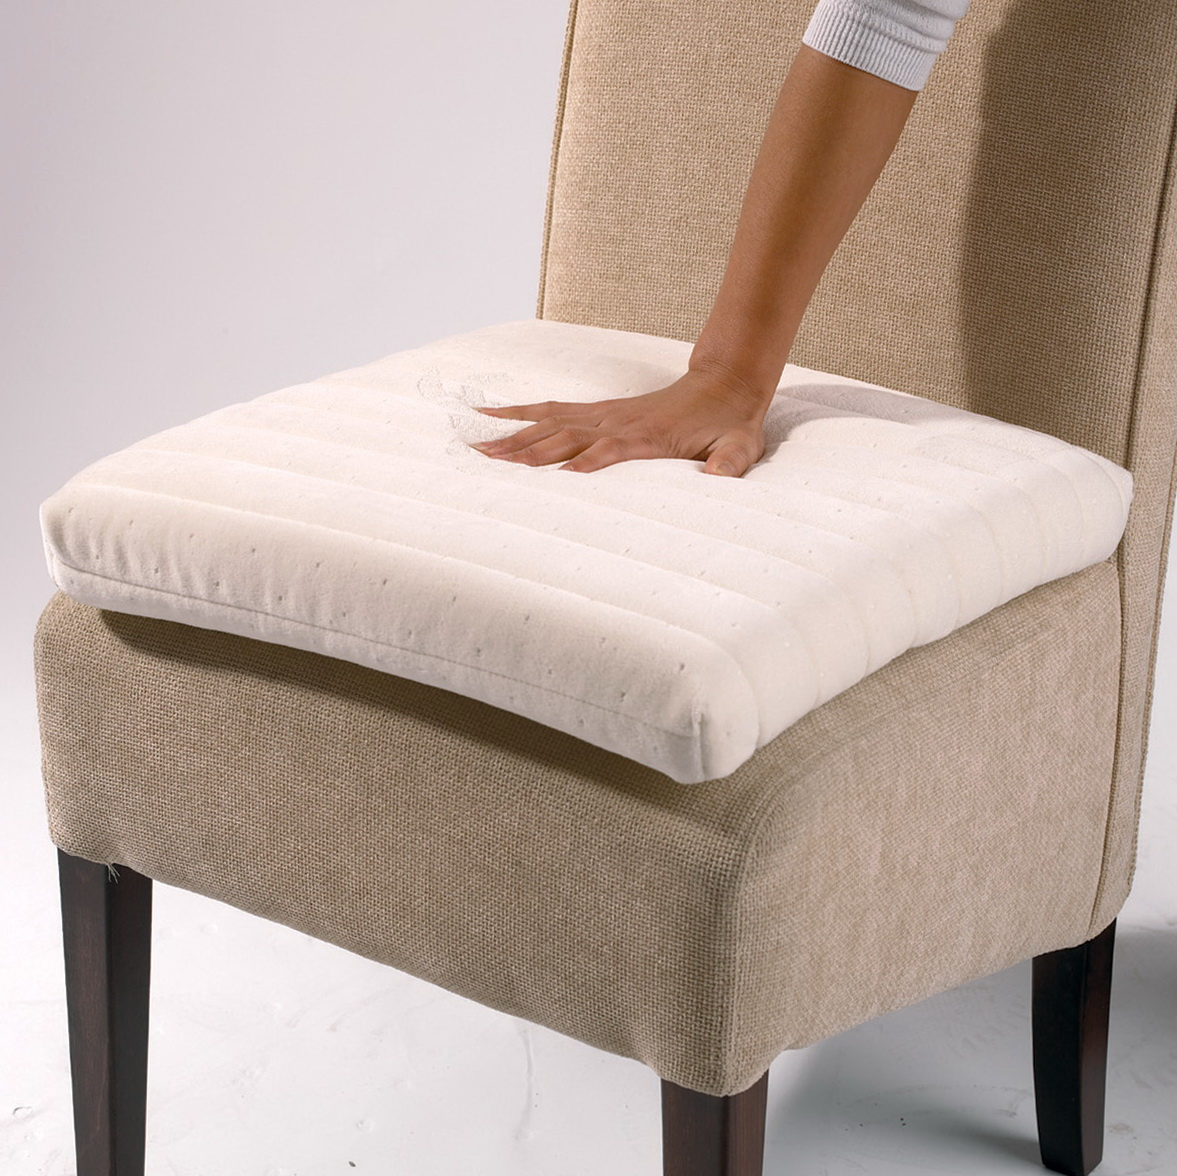 Memory Foam Seat Cushions For Chairs  Home Design Ideas